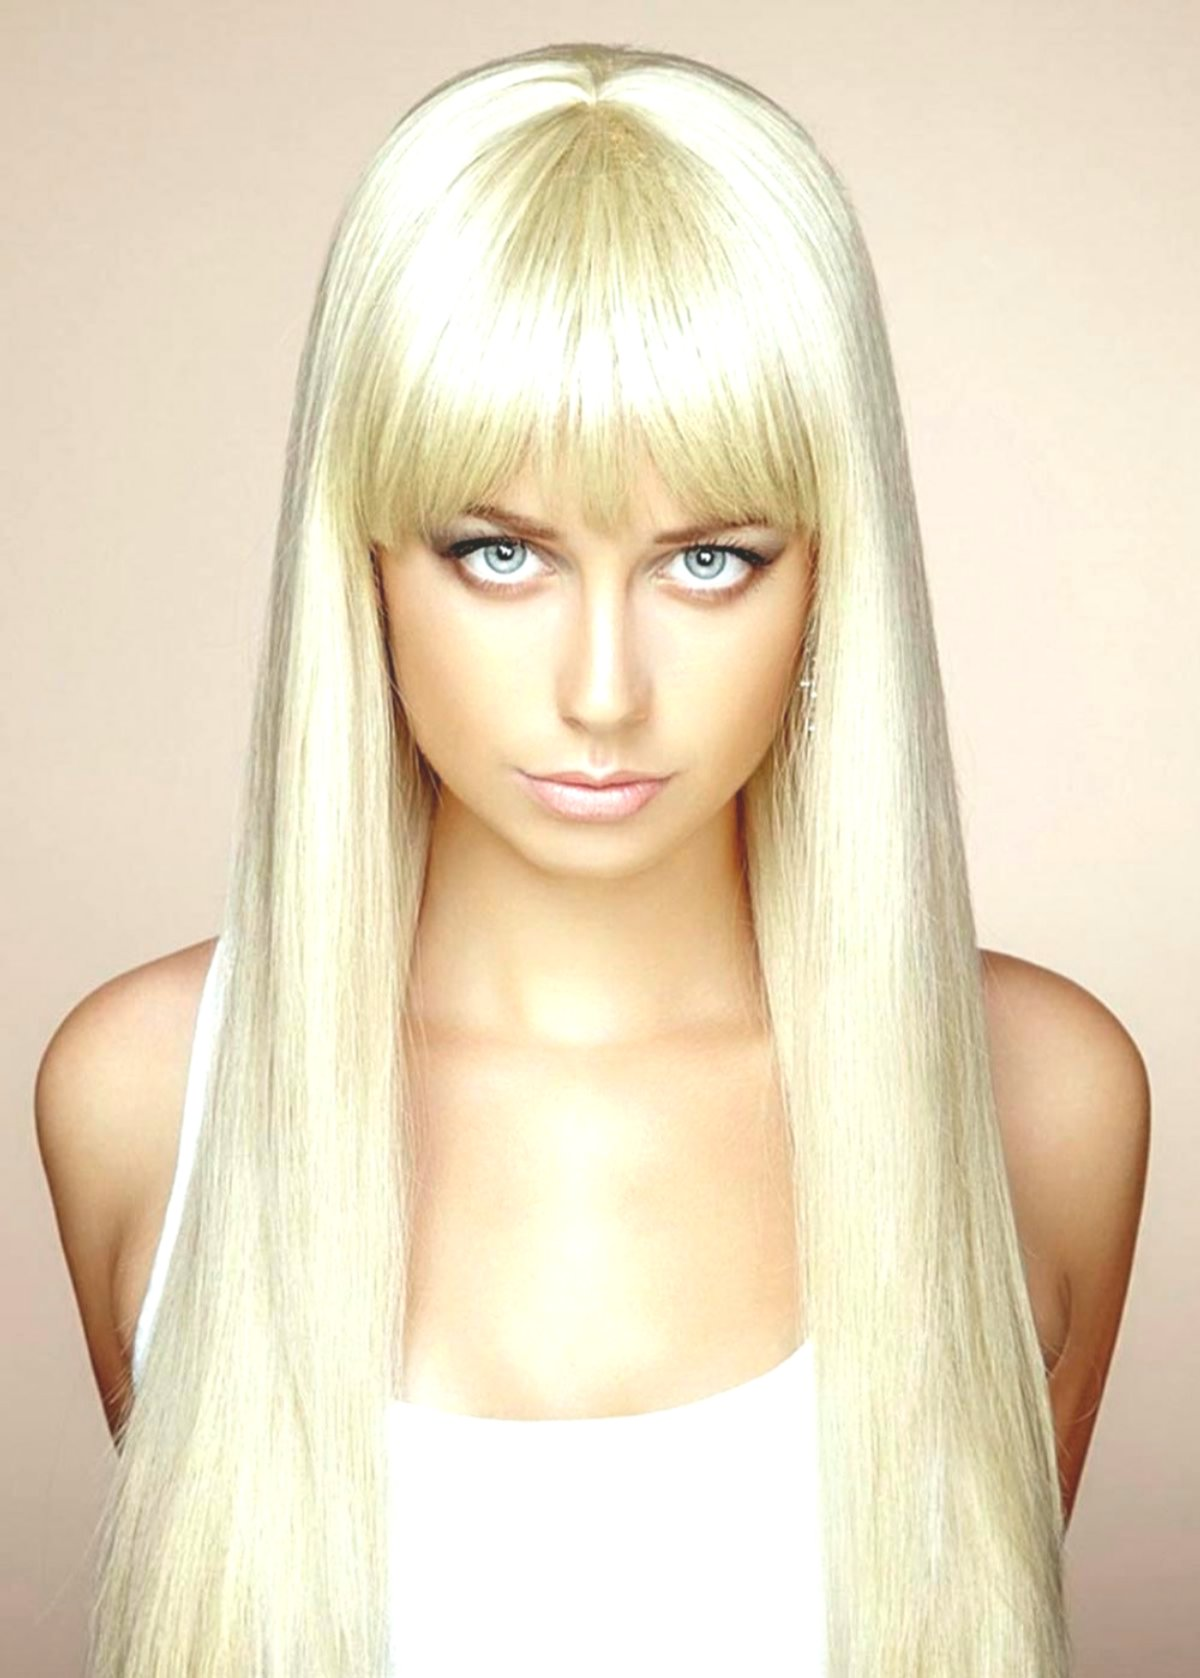 best extremely long hair model-Stylish Extremely Long Hair Inspiration